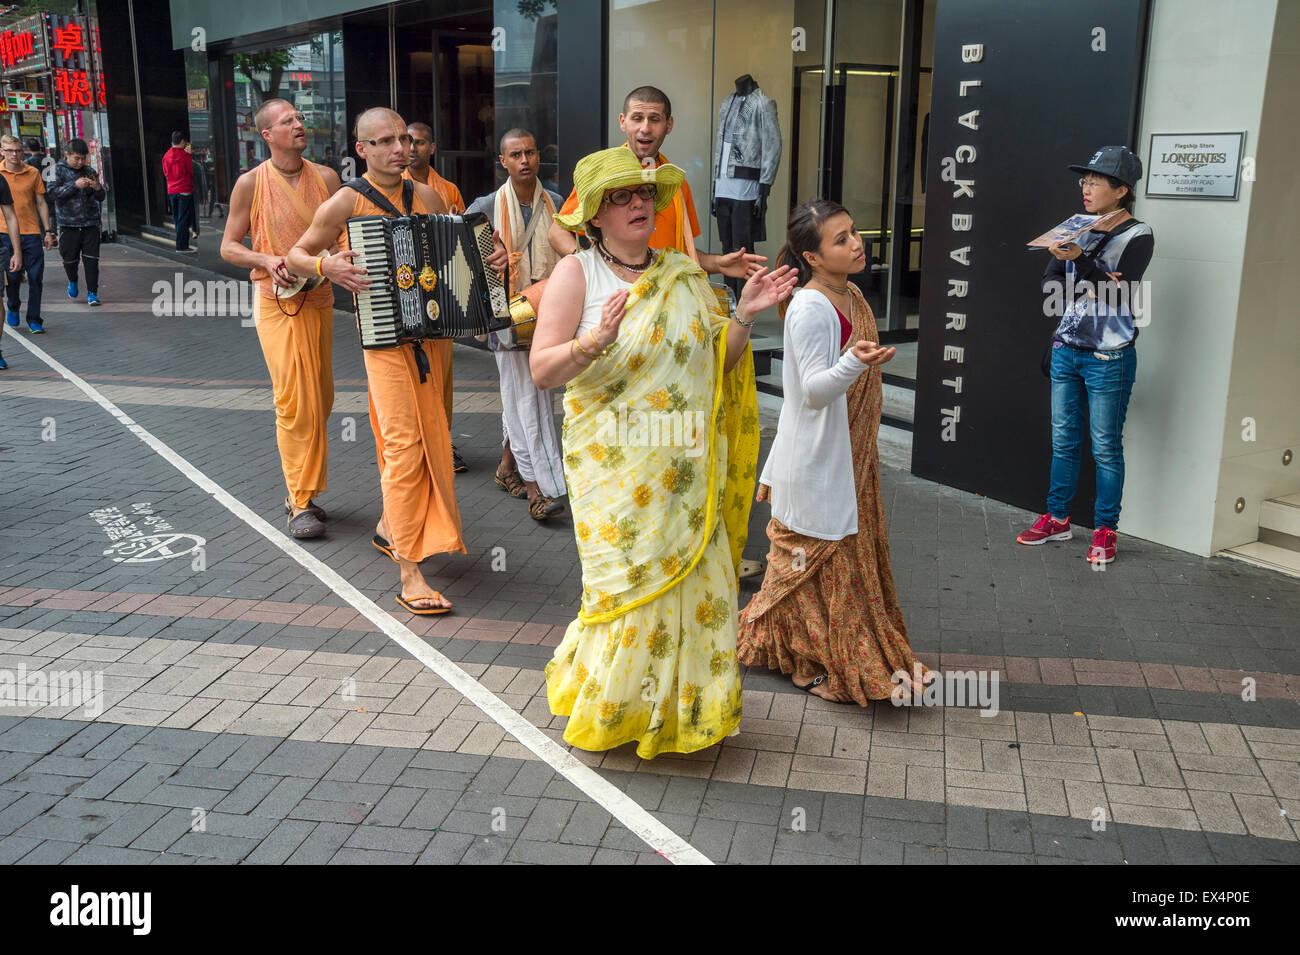 Devotees from Hare Krishna play music and sing on the street, in Hong Kong, China - Stock Image